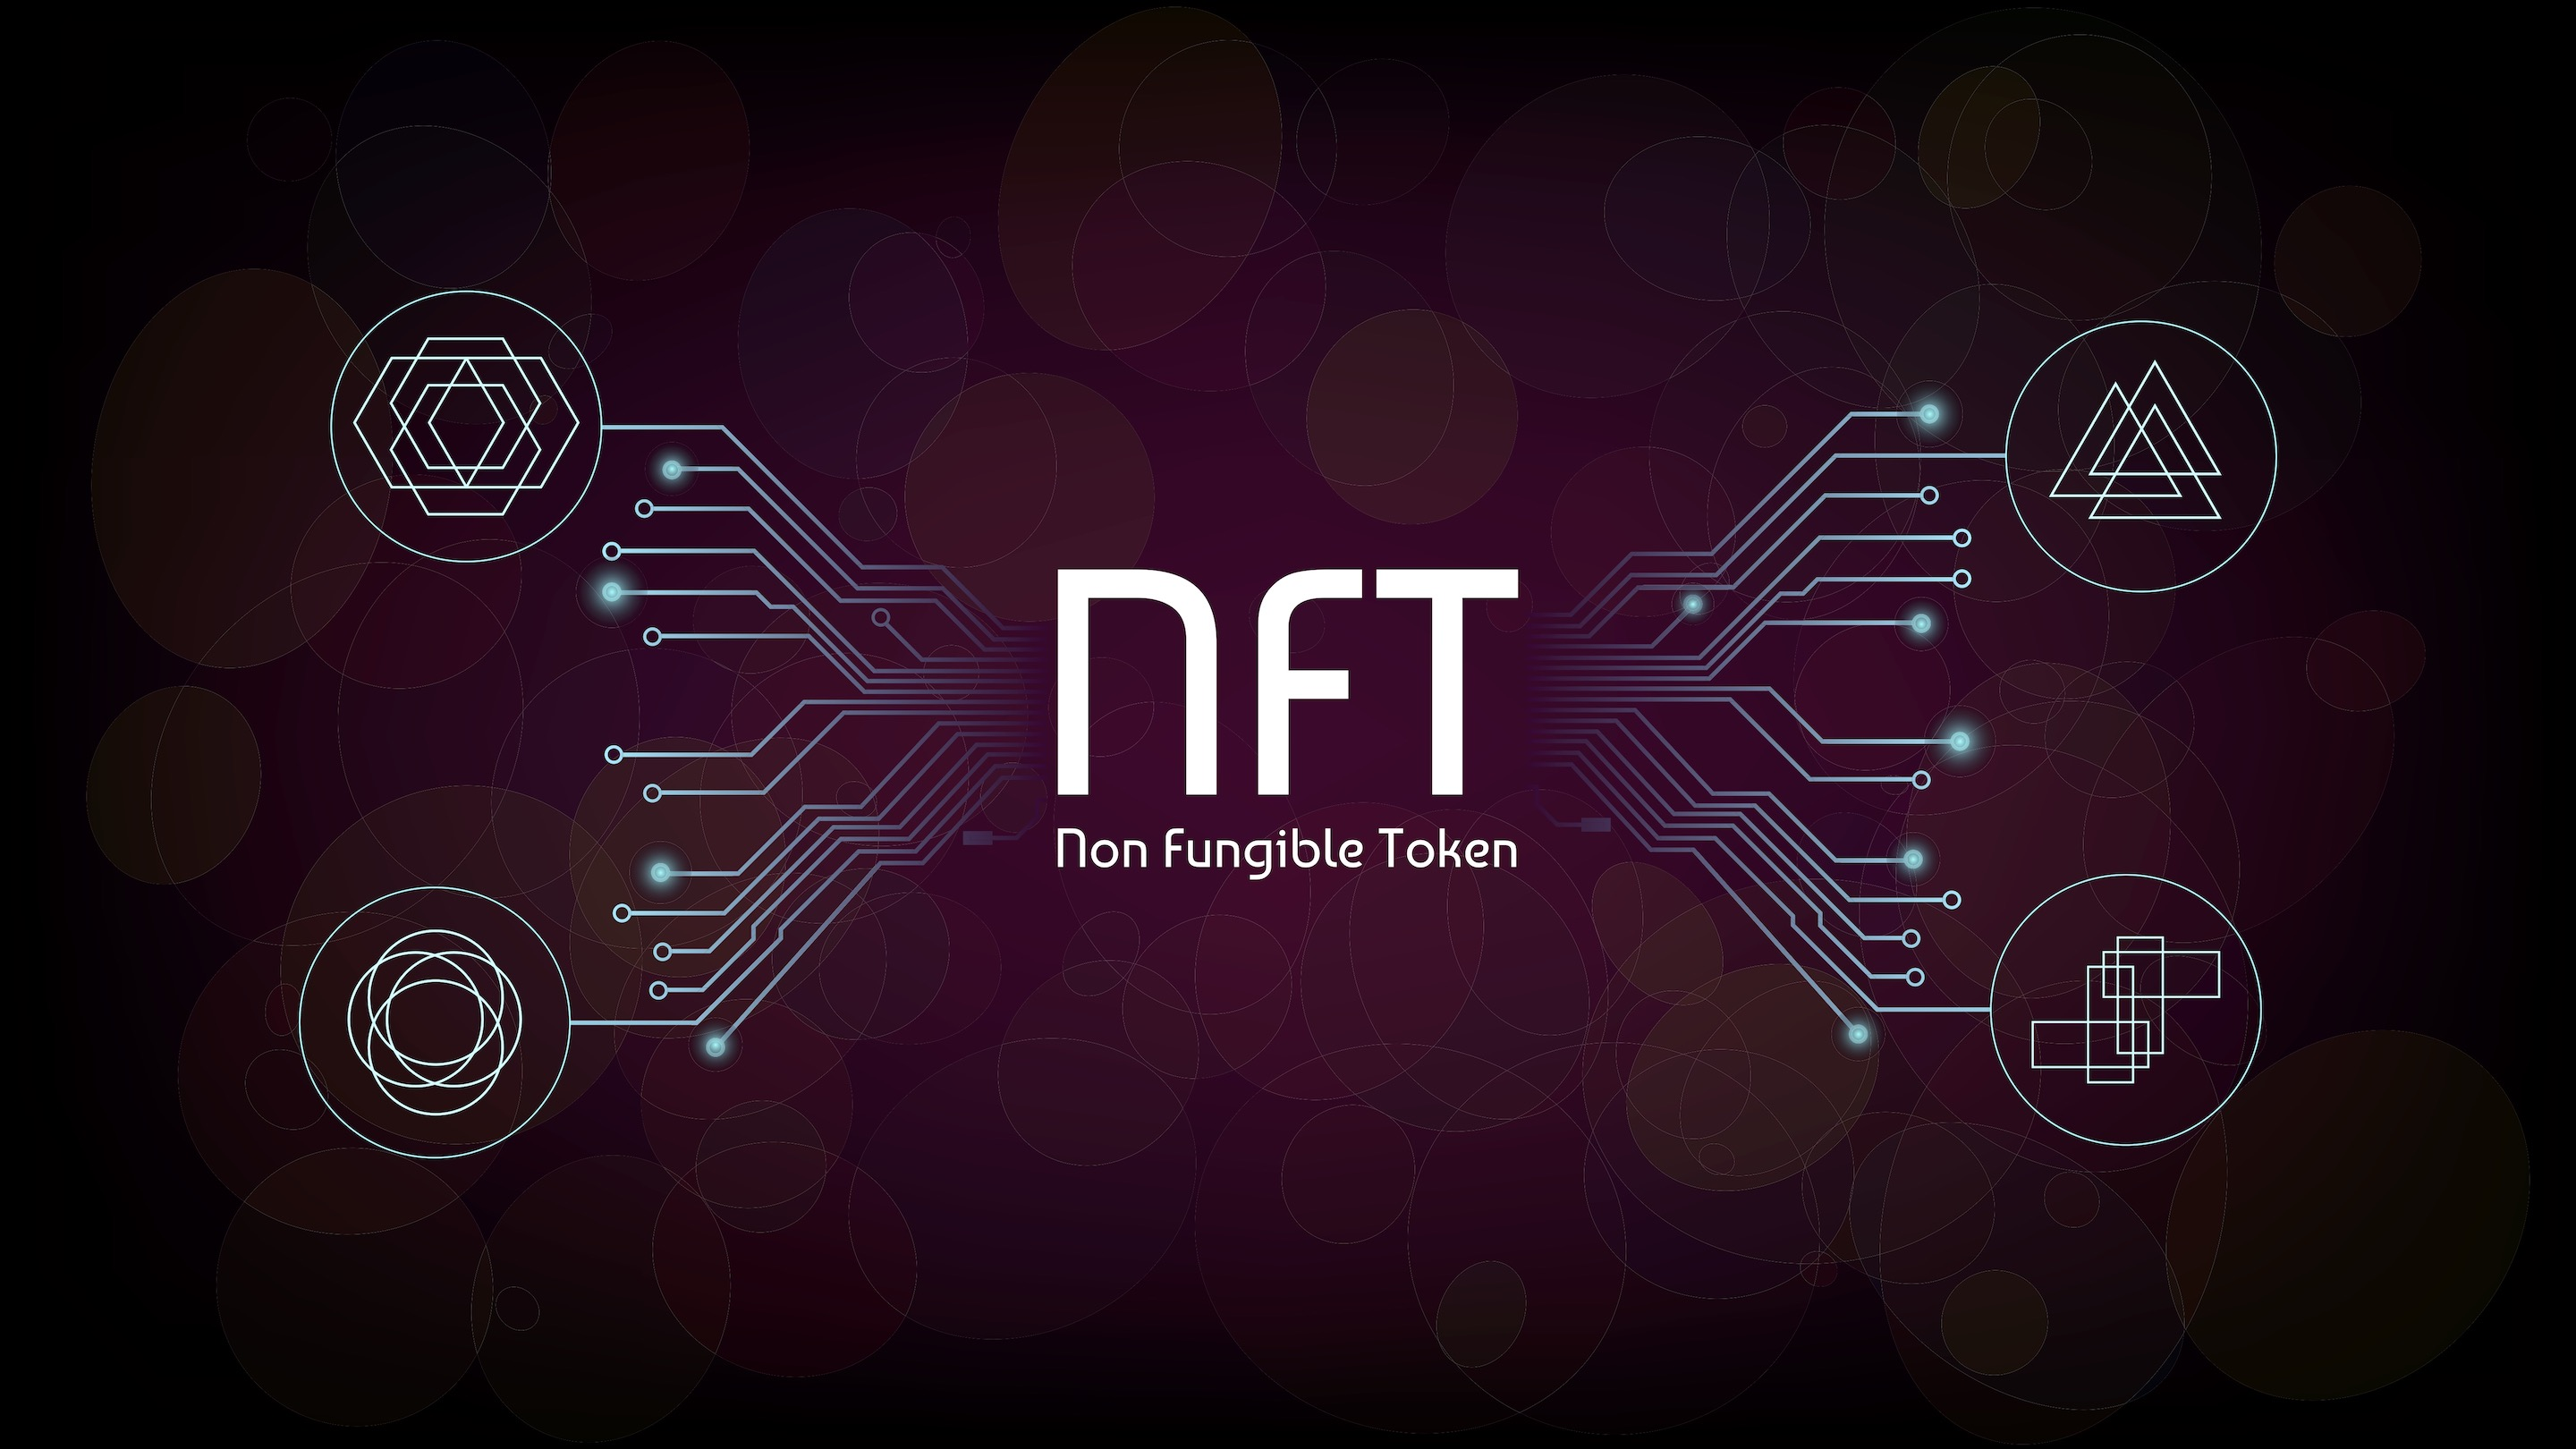 Digital art selling for millions with crypto tokens called NFT